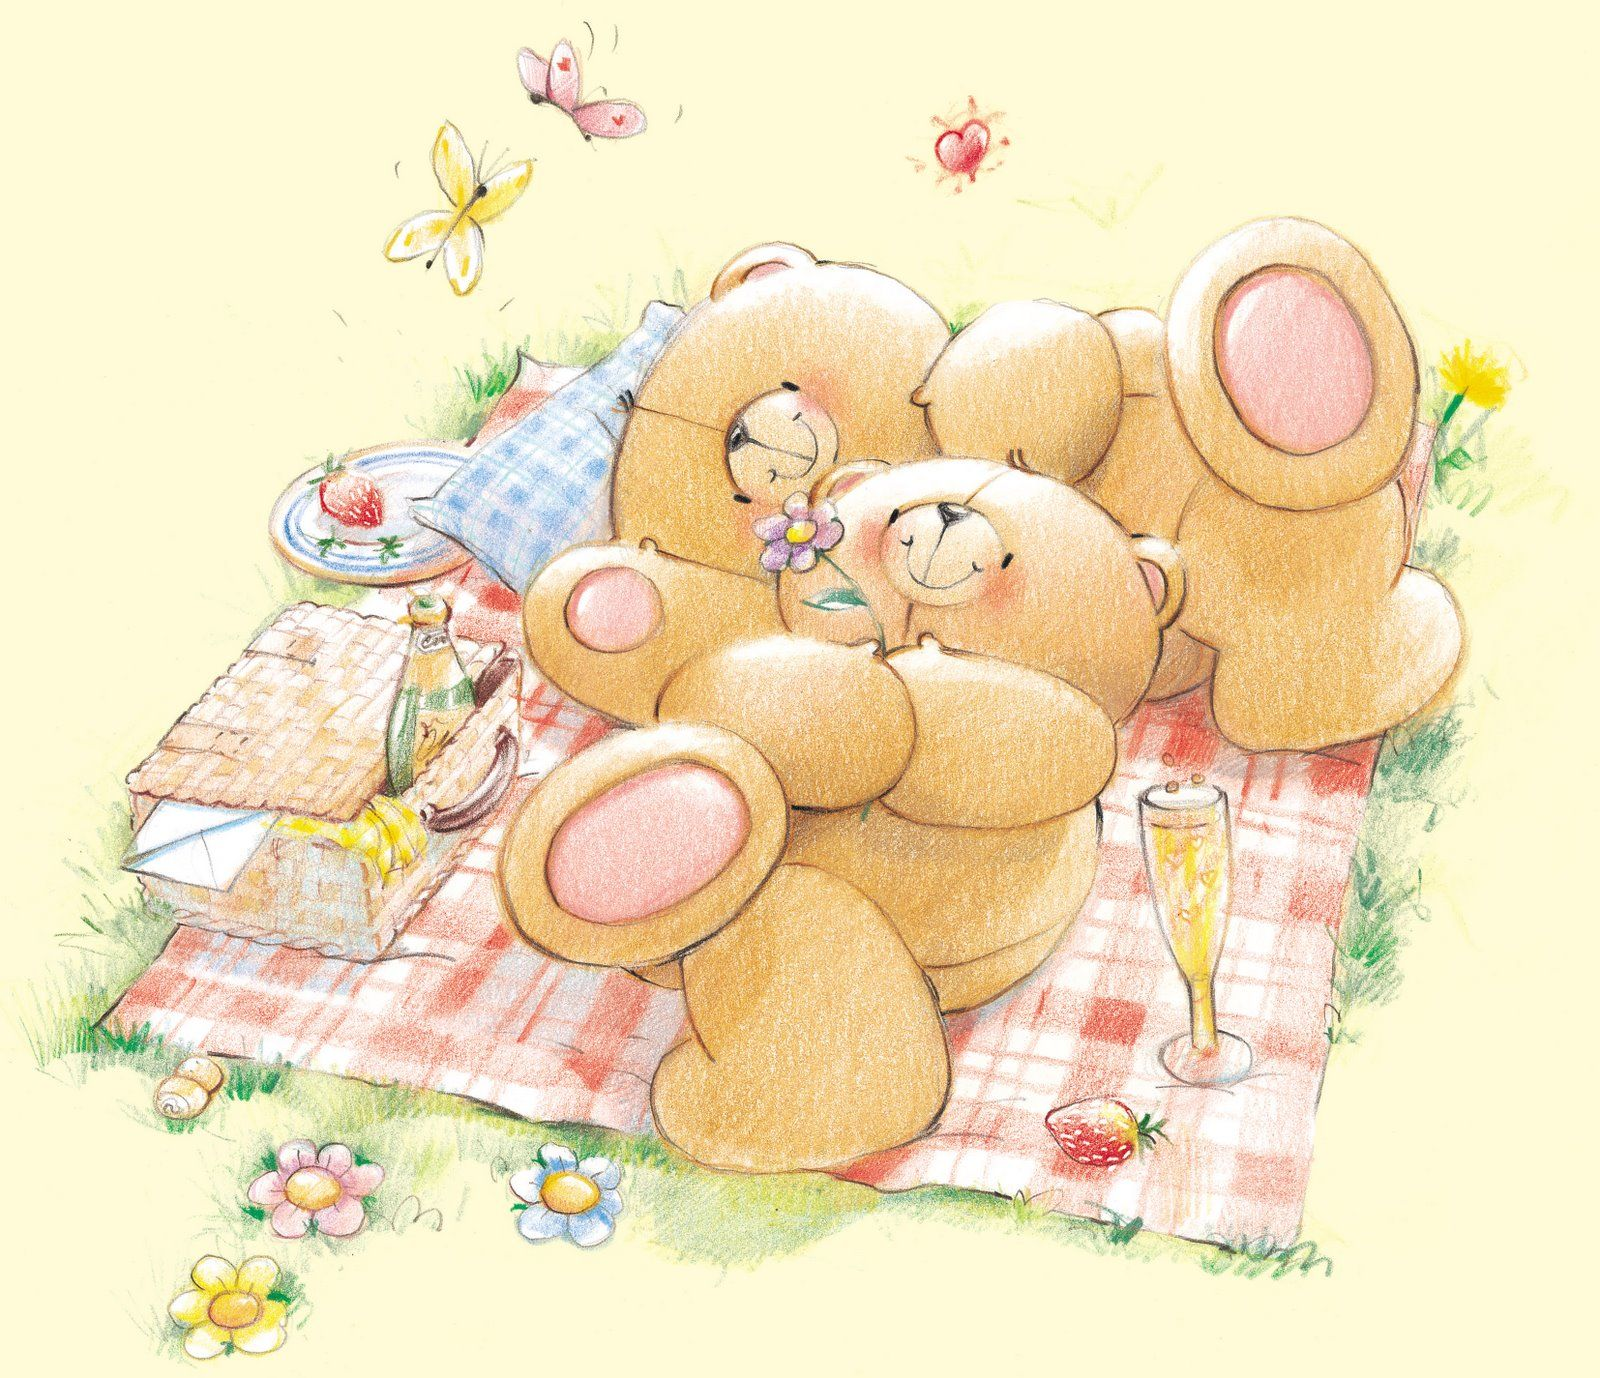 Pin By Belen Lopez On Forever Friends Forever Friends Bear Friends Forever Teddy Bear Pictures